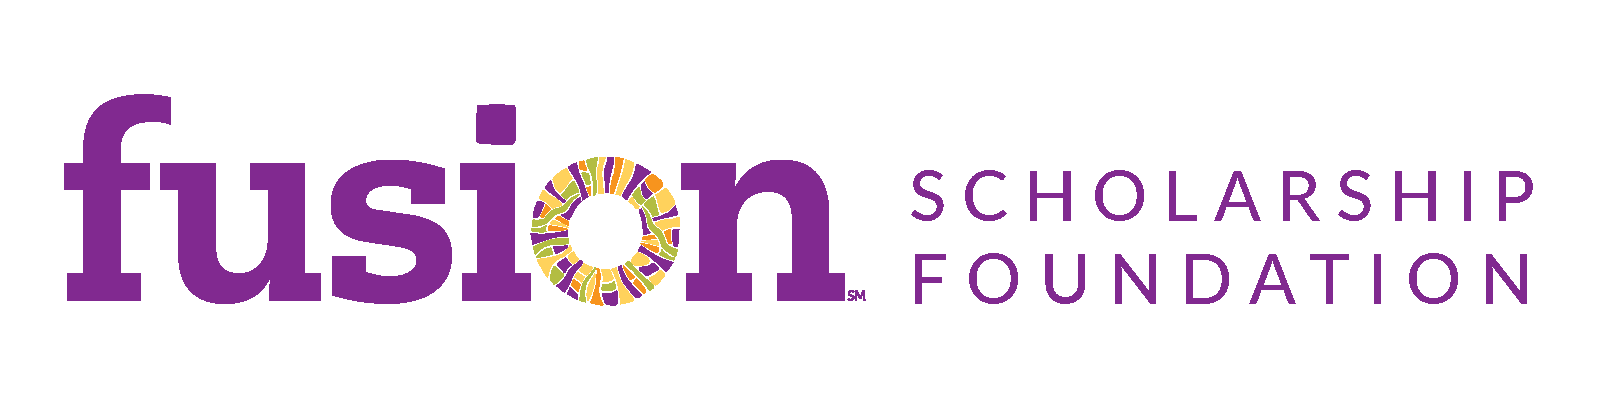 FusionScholarshipFoundation